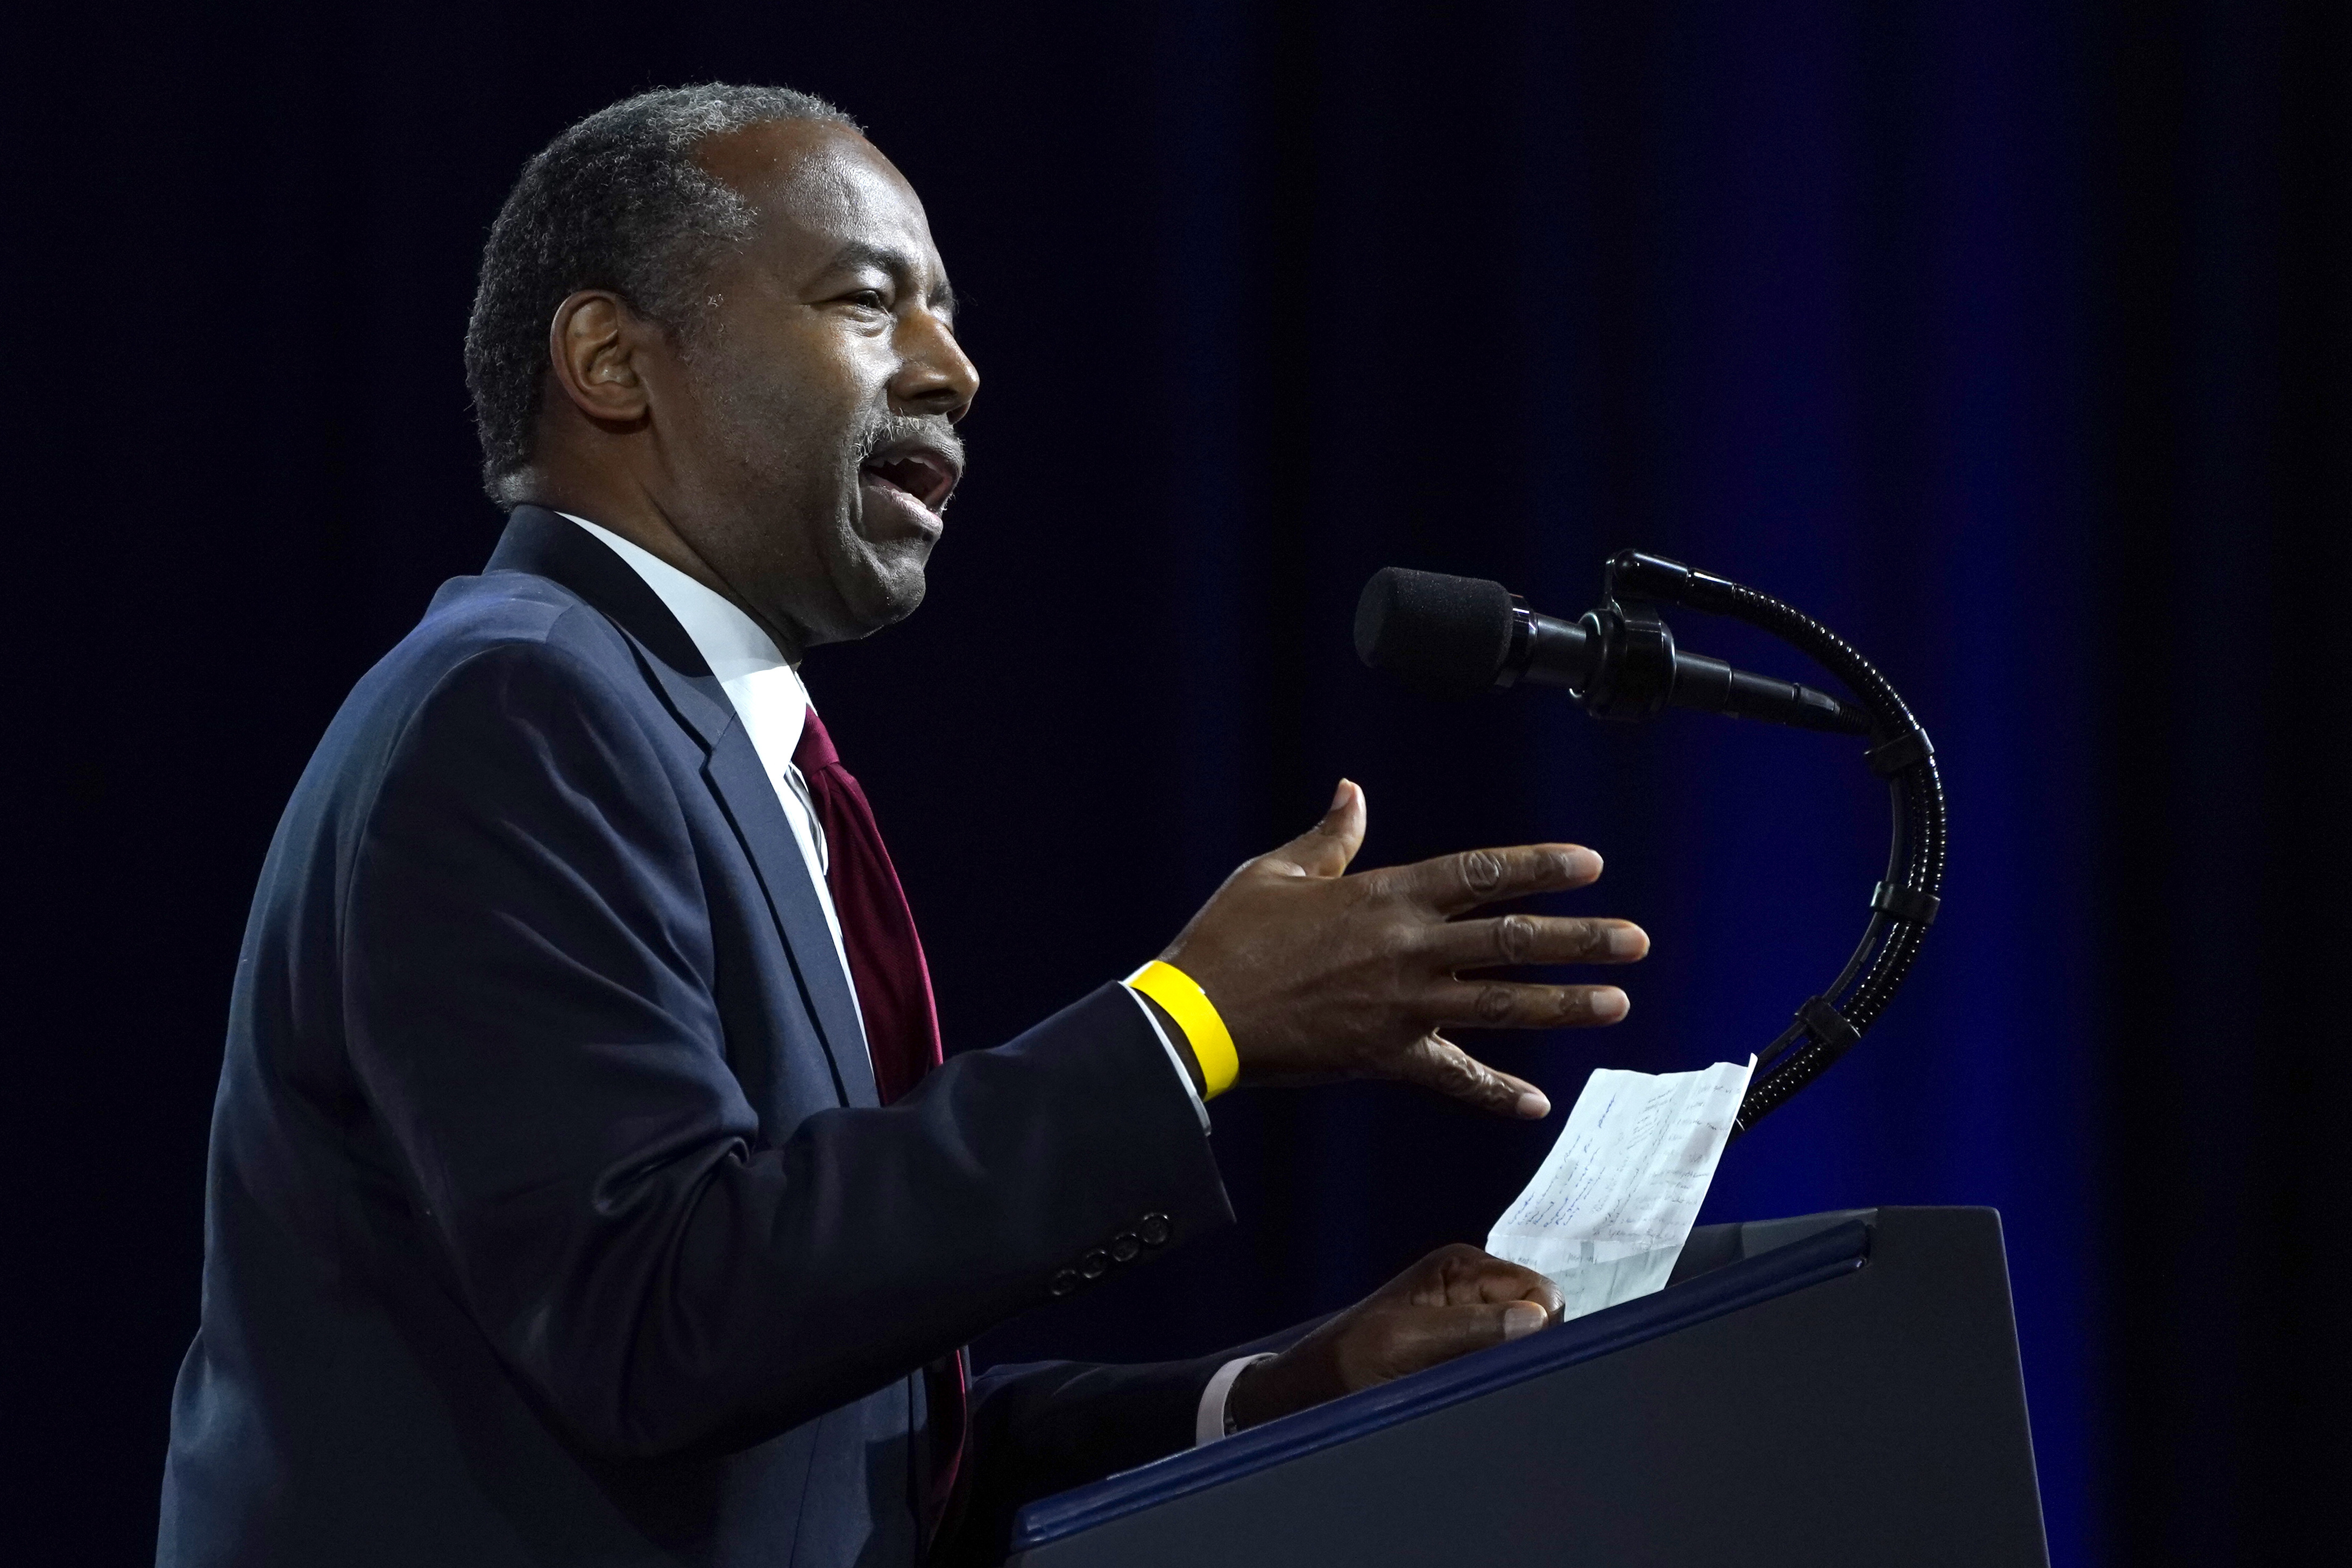 Hud Secretary S Notes Show He S Upset With Wh Appointments Prabhu had told the staffer that he'd look into the pf issue after the covid outbreak ends, said police. https www ksat com news politics 2020 09 25 hud secretarys notes show hes upset with wh appointments